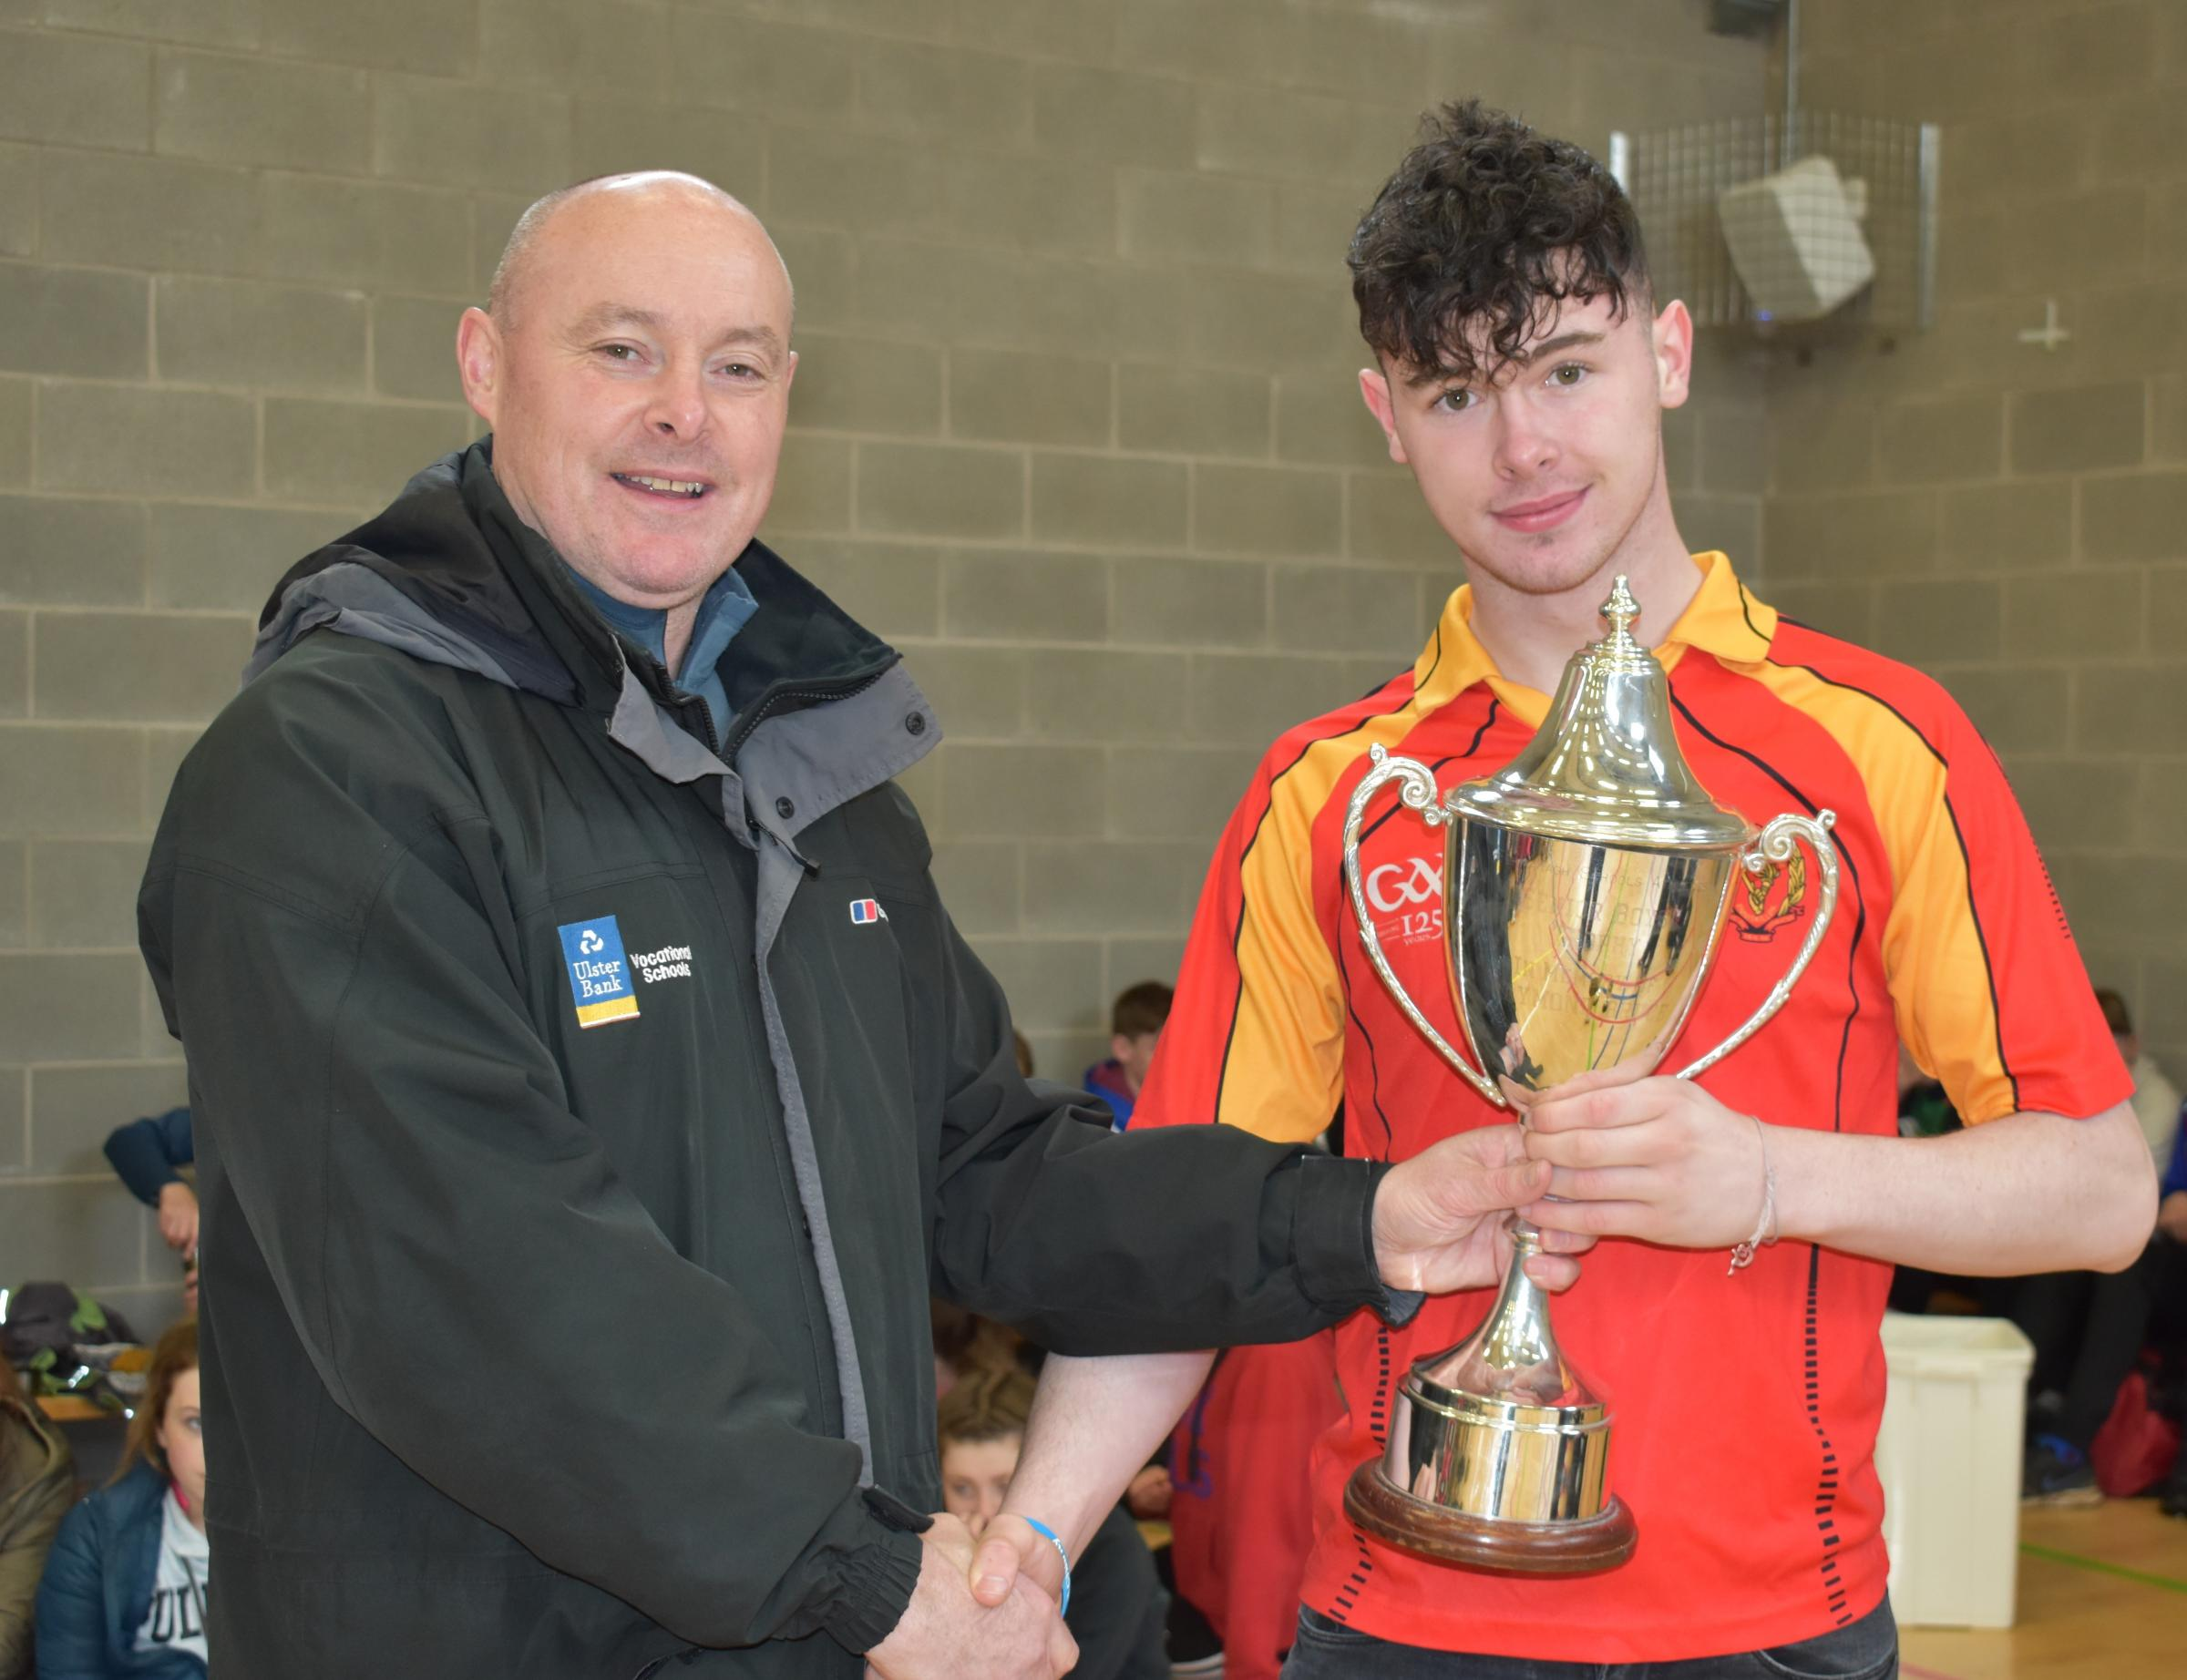 Malachy O'Rourke, St. Jospeh's College, presenting a cup to Ethan Rooney, winner of the 100m and 200m at captain of the successful St. Joseph's Senior Boys team.